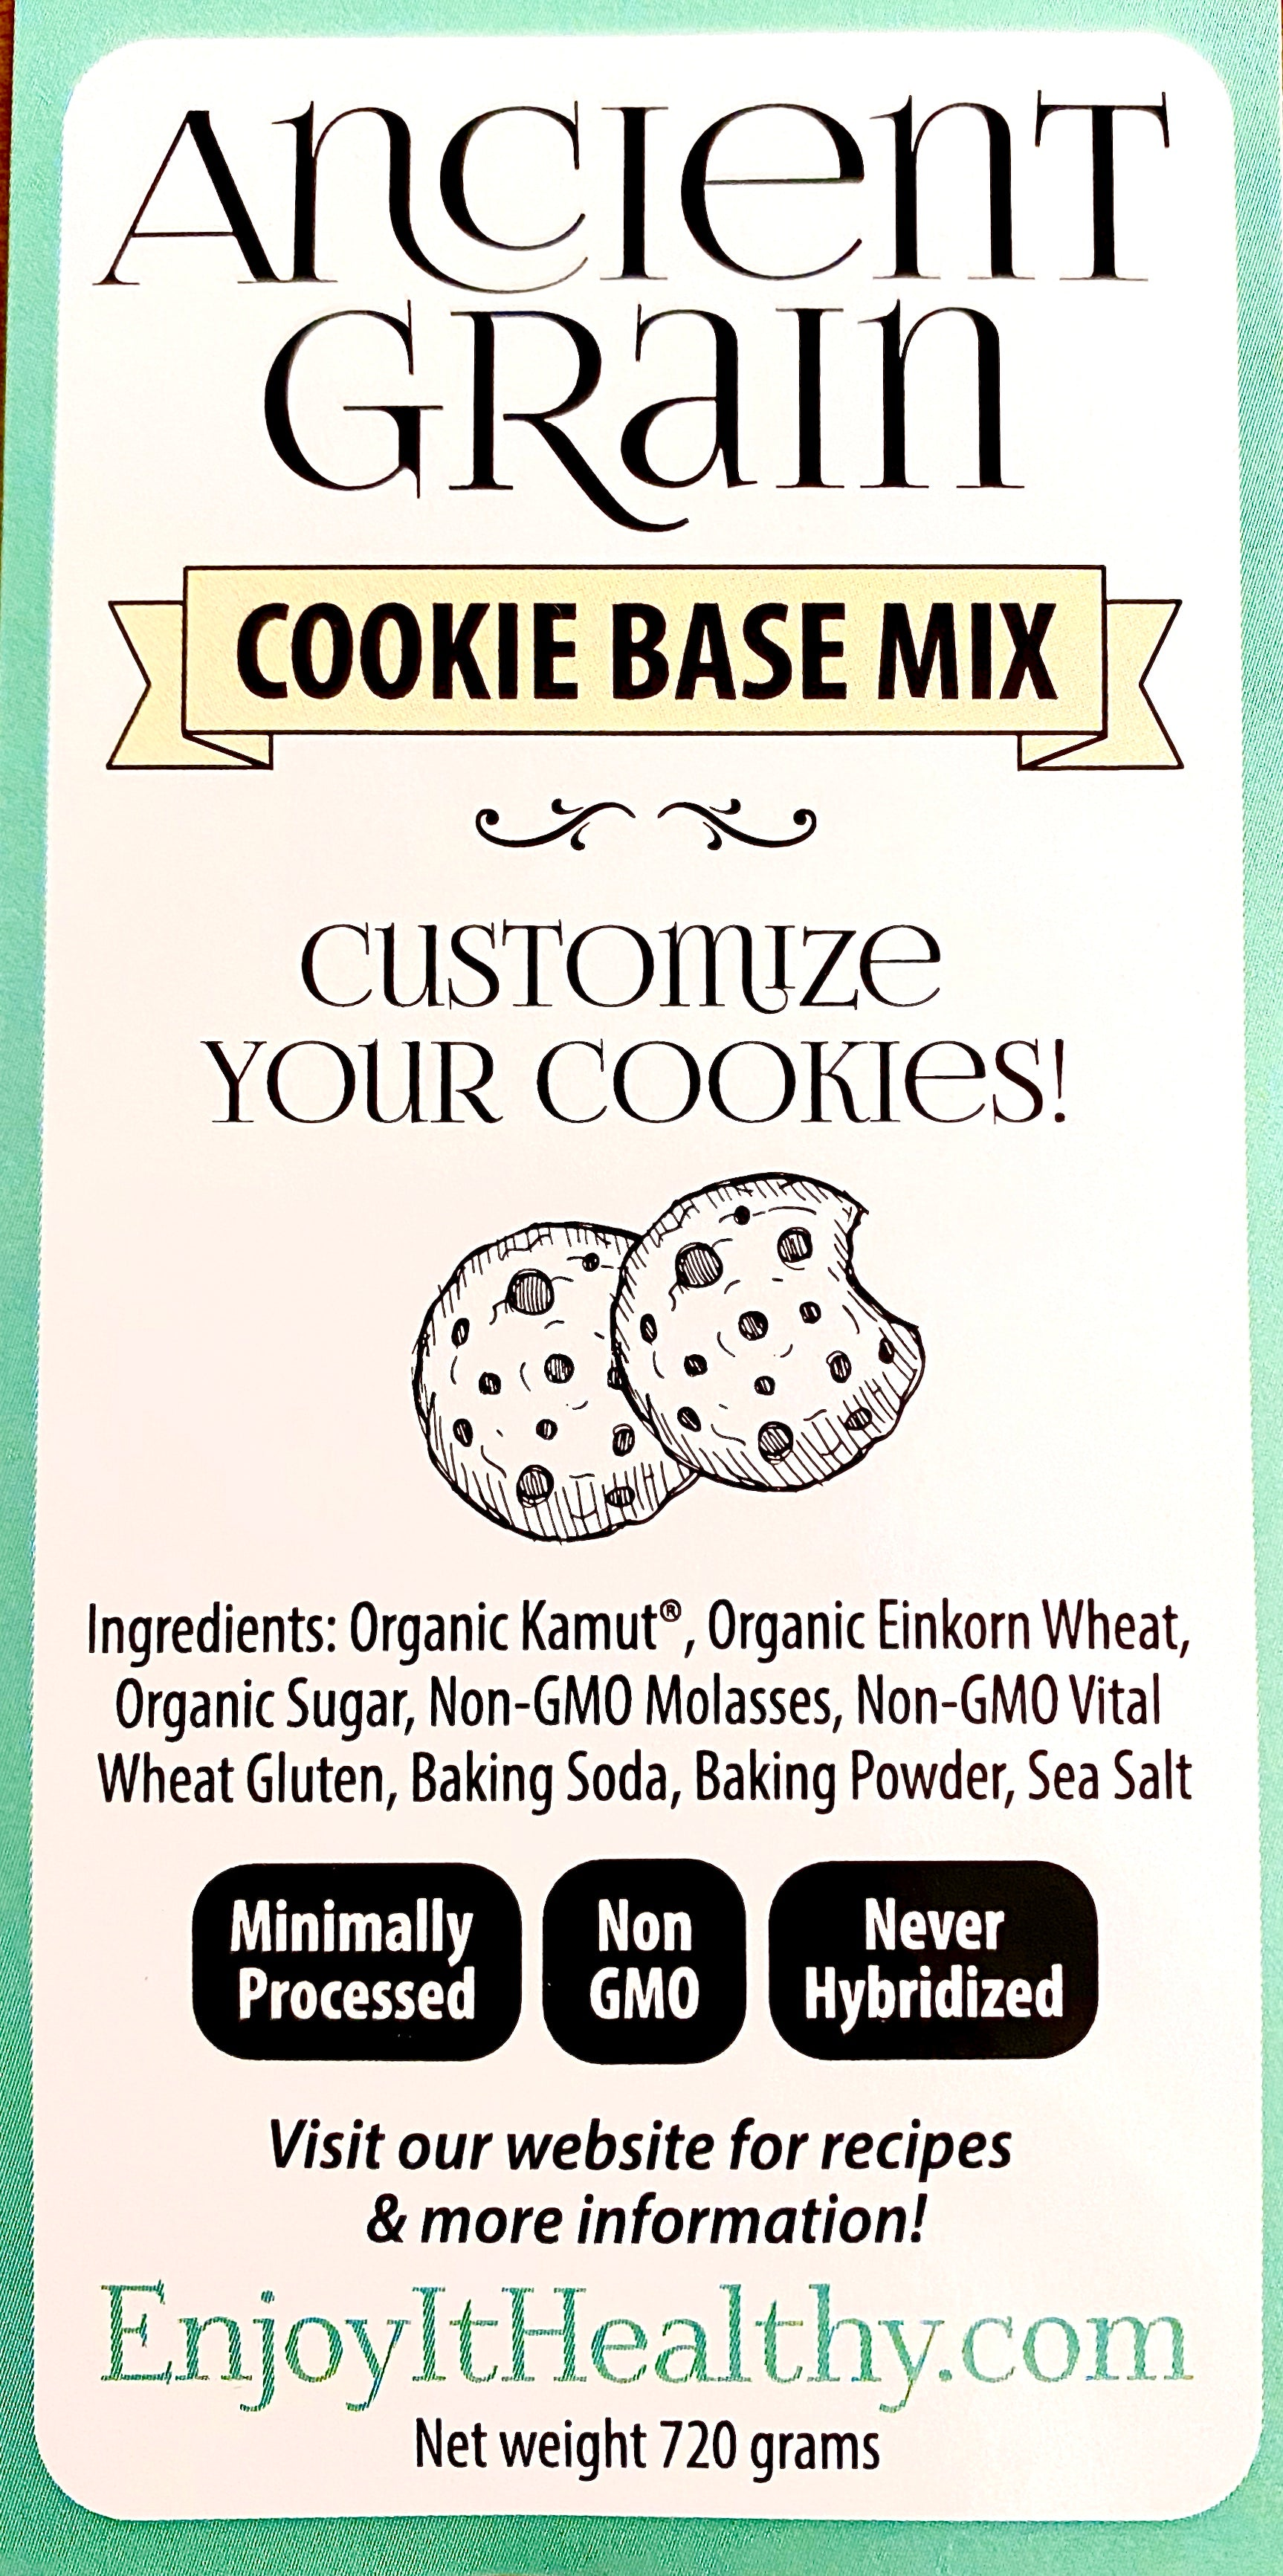 Ancient Grain Cookie Base Mix